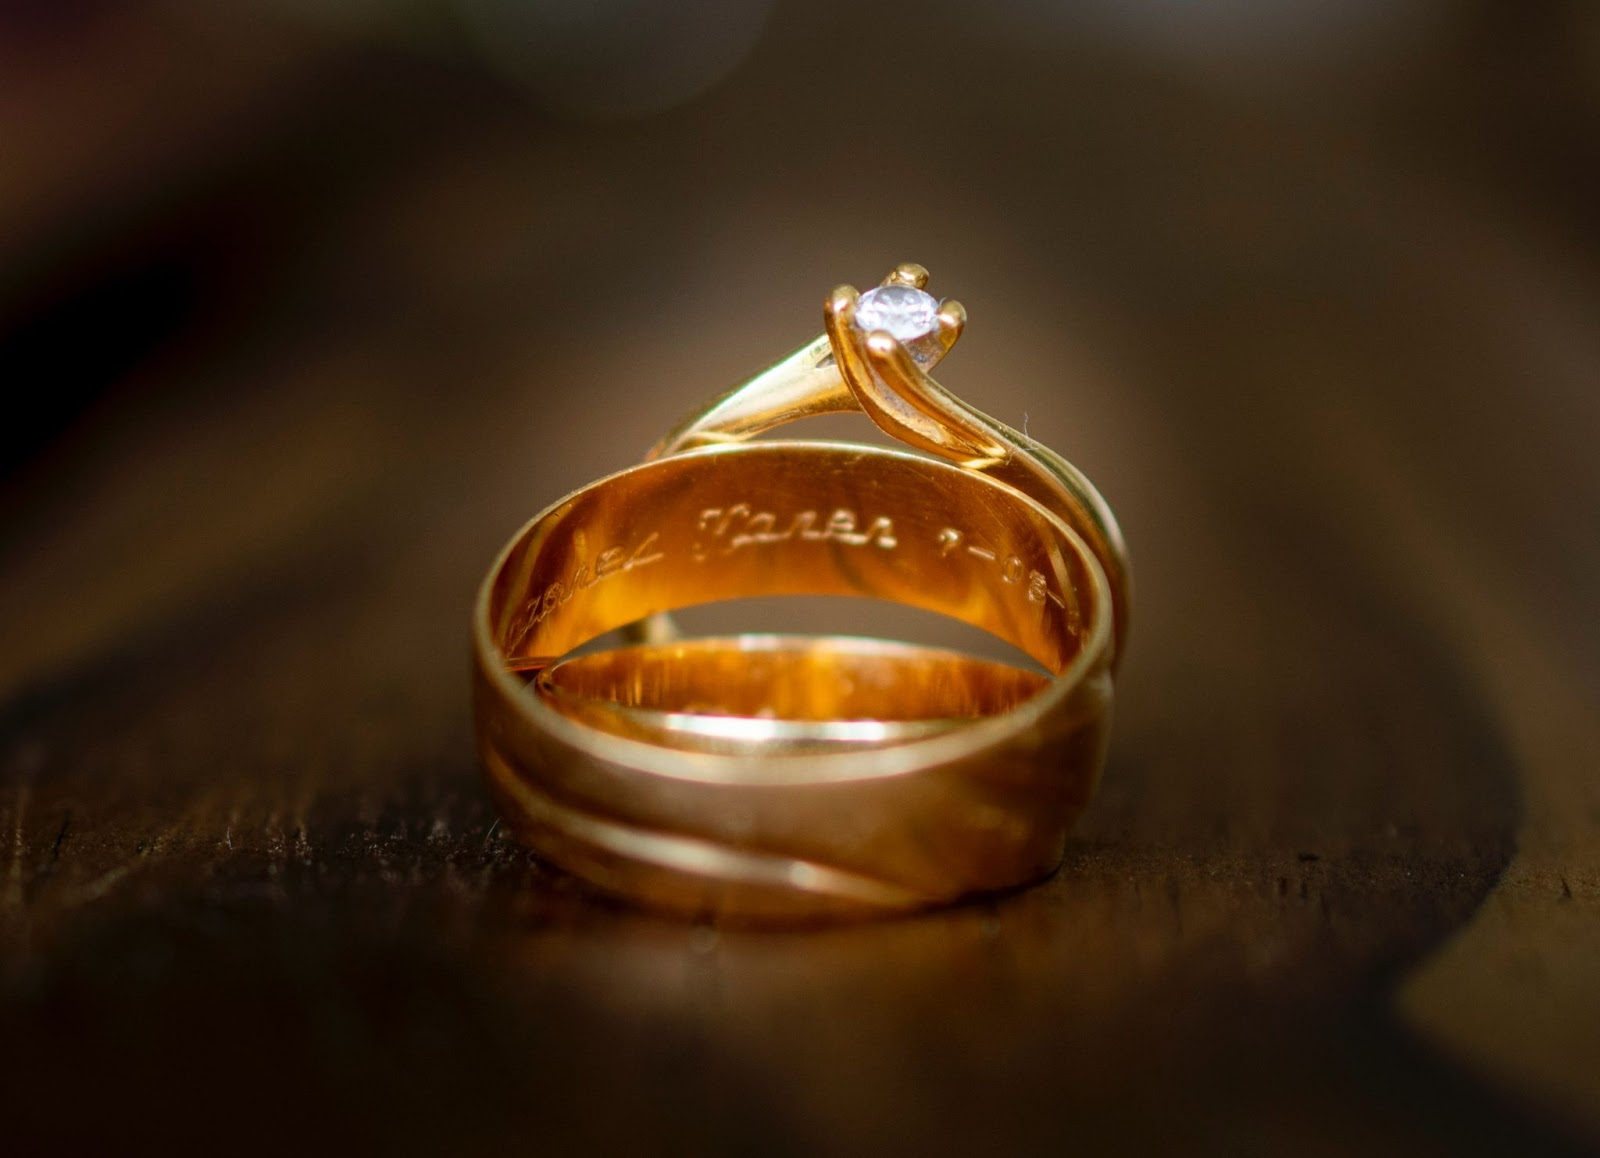 Close up of a gold ring with a small diamond. 'Gold ring' is one of the popular beauty & jewelry keywords on Etsy.